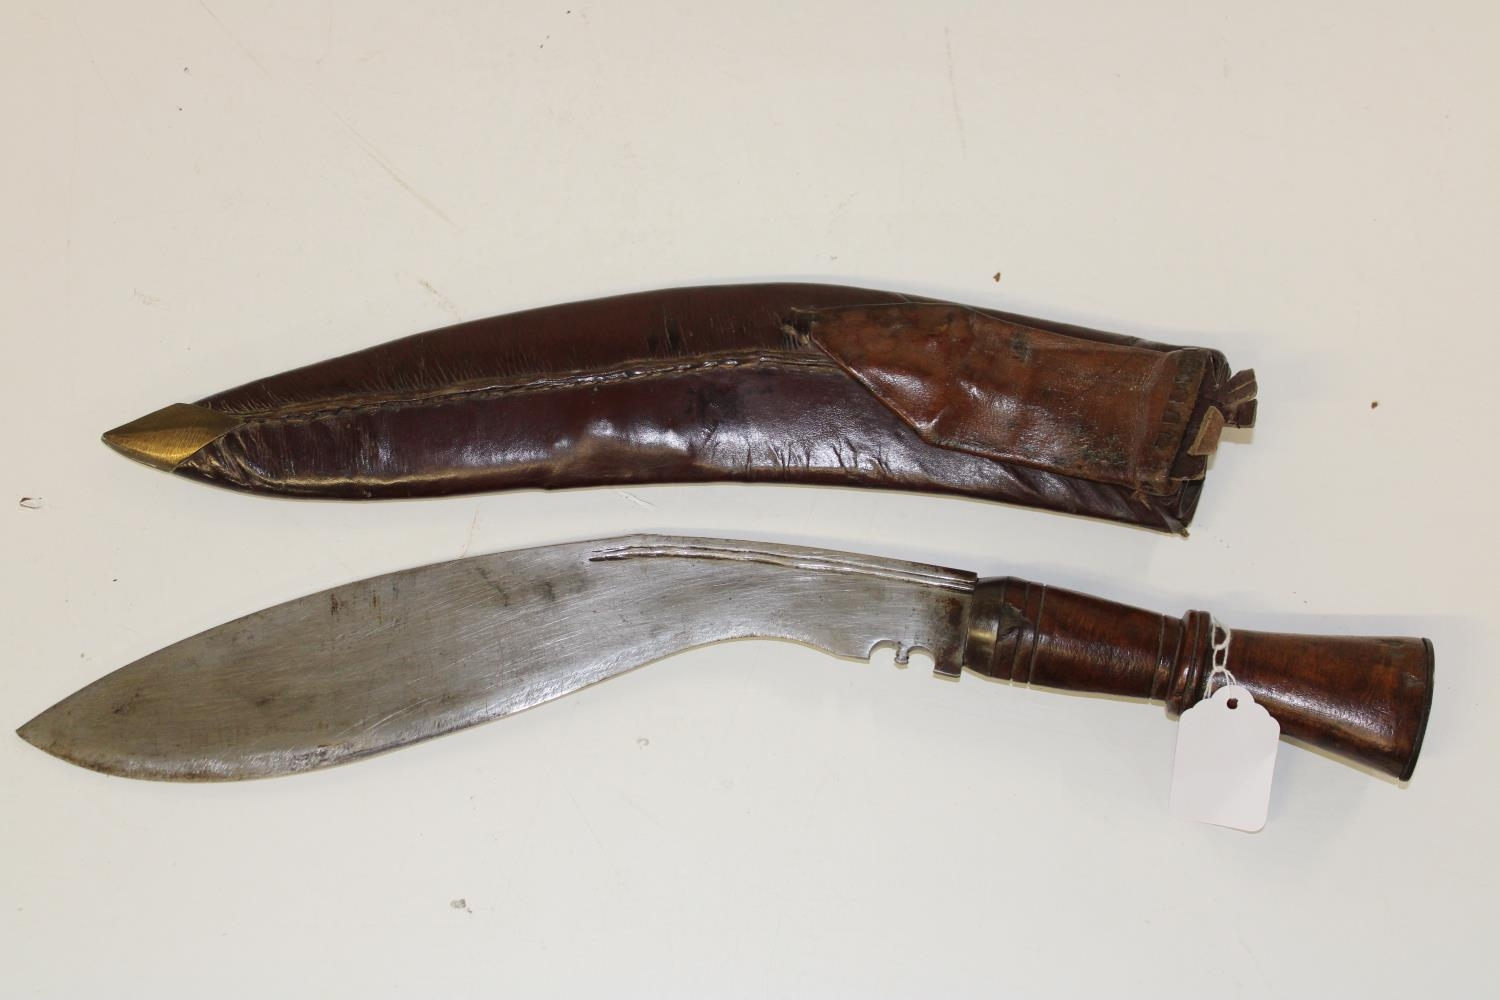 A large Kukri Gurka style knife with a wooden handle in a leather sheath Length of knife 46cm